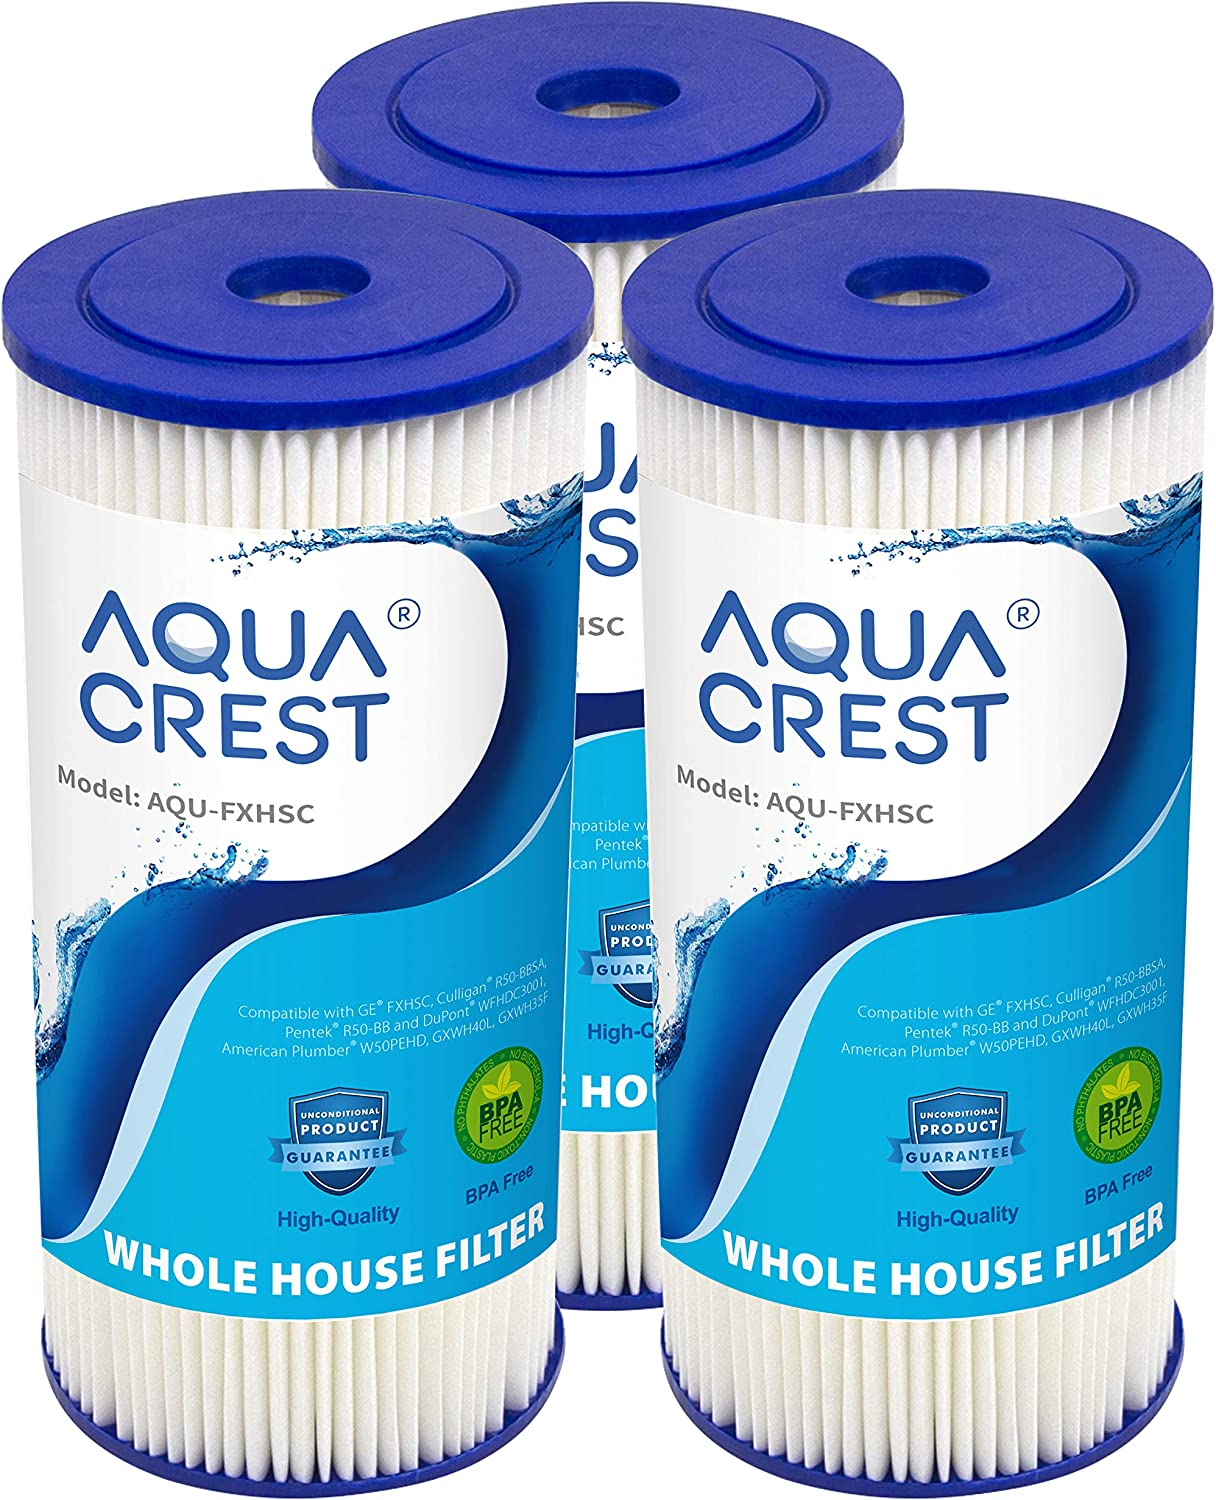 AQUA CREST FXHSC Whole House Water Filter, Compatible with GE FXHSC, Culligan R50-BBSA, Pentek R50-BB and Dupont WFHDC3001, American Plumber W50PEHD, GXWH40L, GXWH35F (Pack of 3)